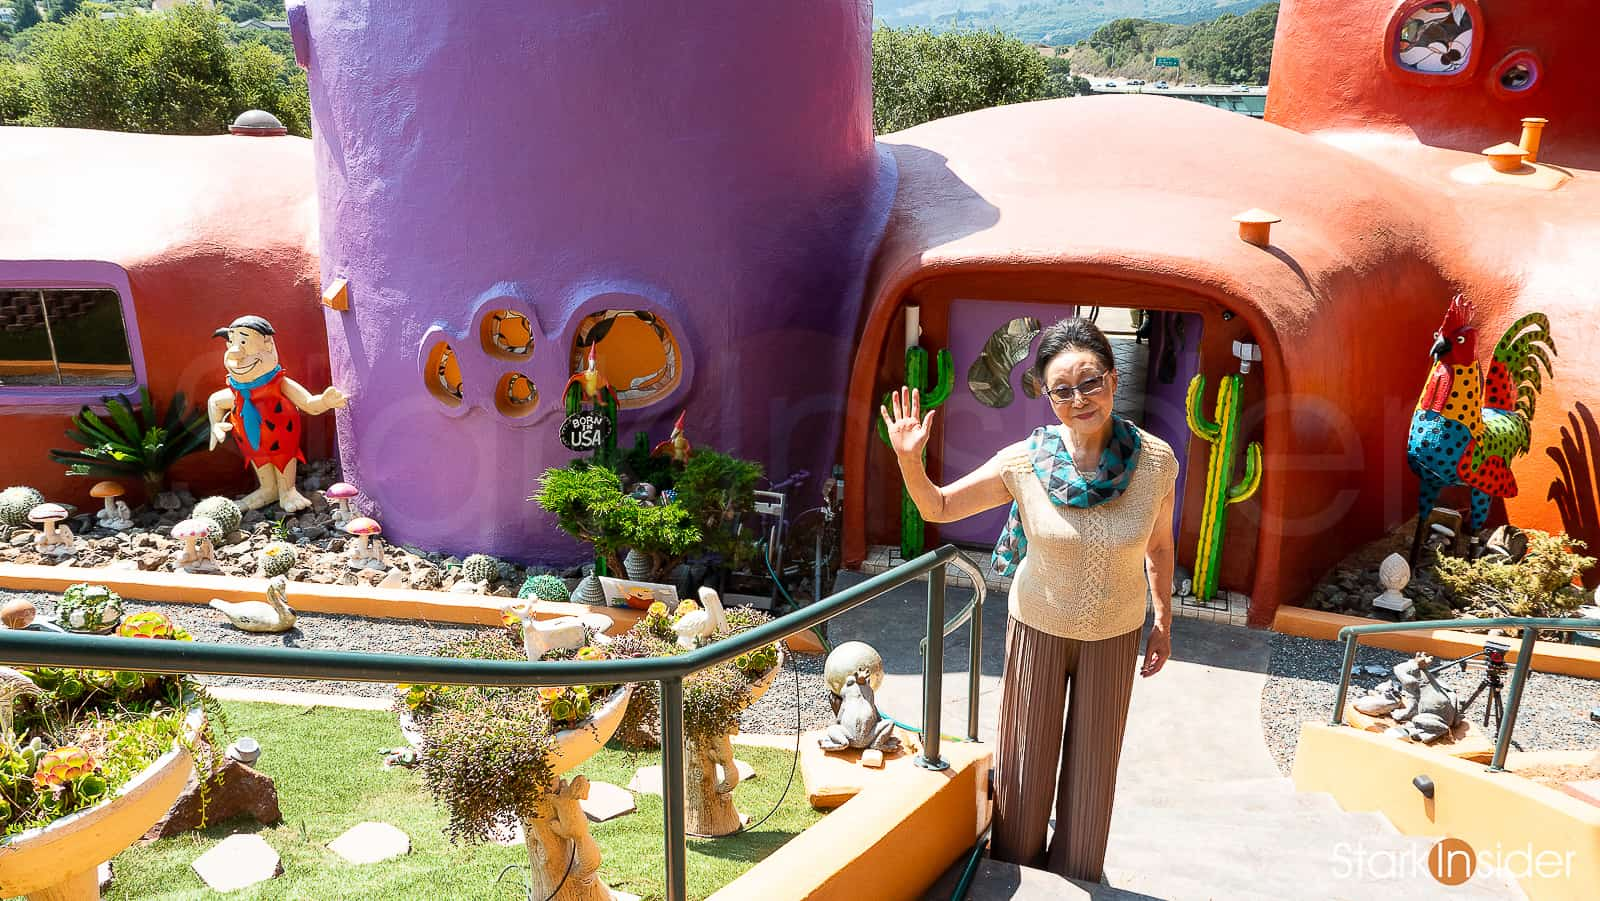 Image result for The Flintstones house Hillsborough by the freeway